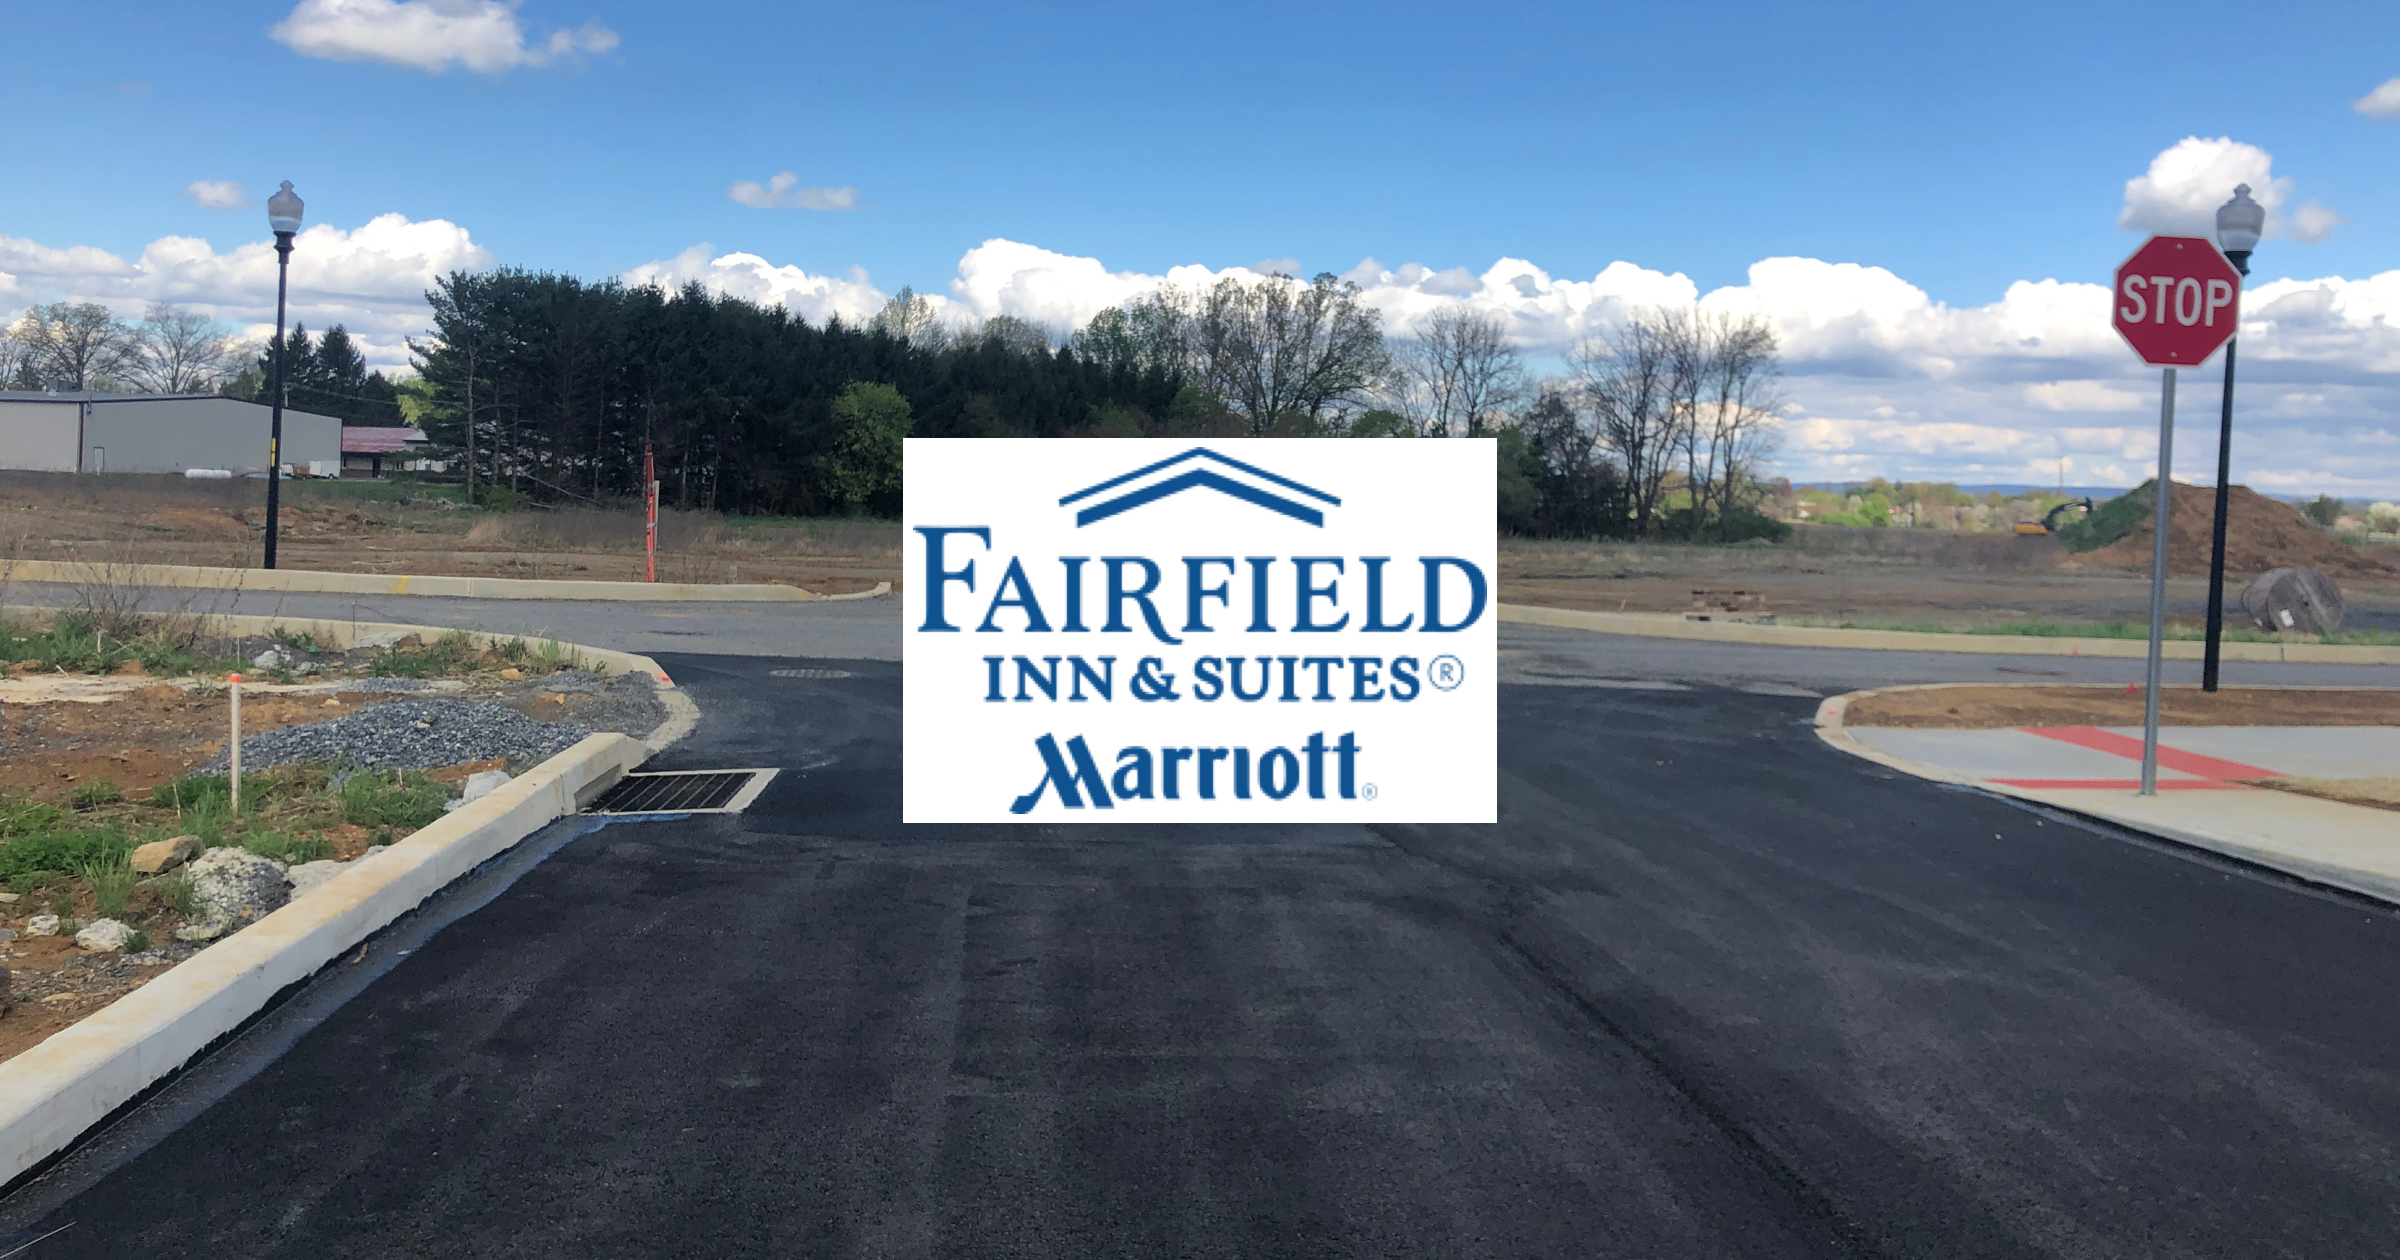 North Cornwall Commons hotel will be a Marriott Fairfield Inn & Suites